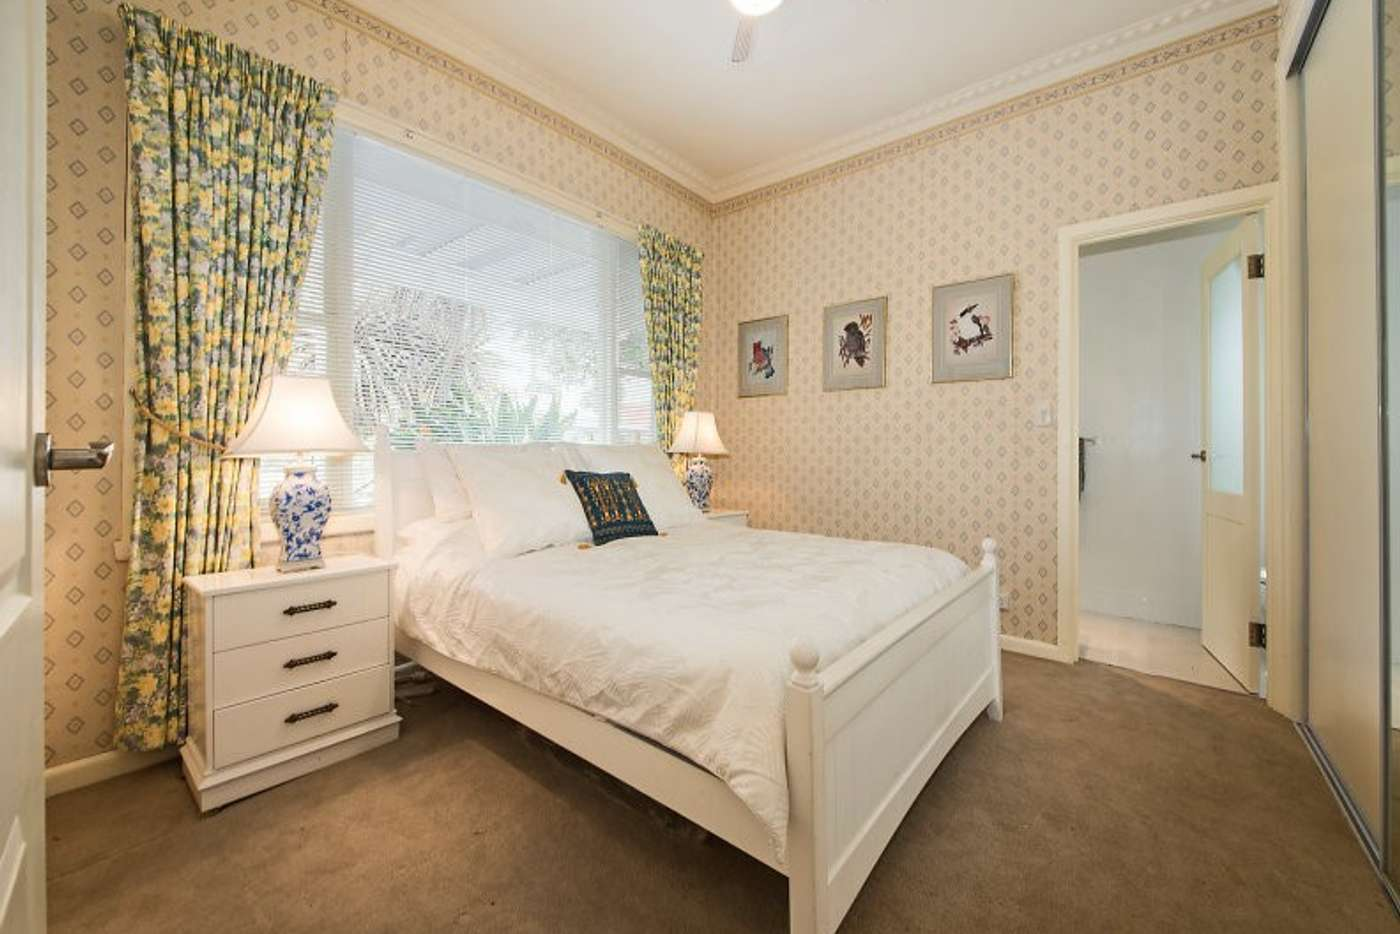 Sixth view of Homely house listing, 3 Warland Road, Hampton East VIC 3188